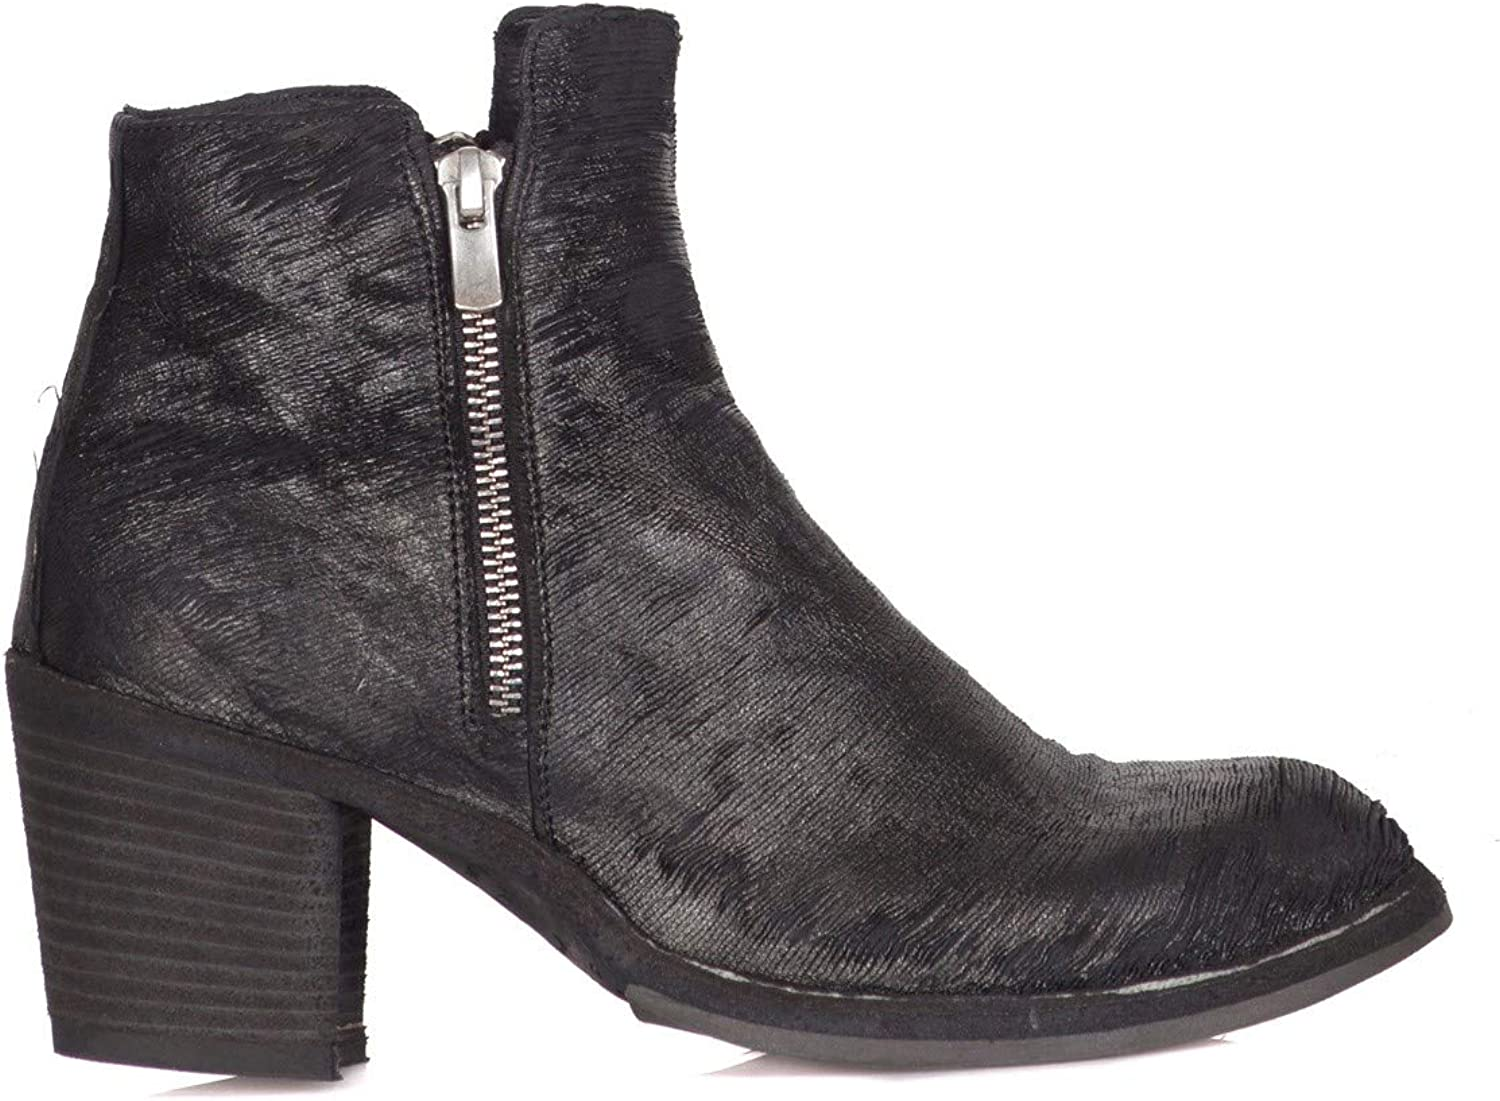 OFFICINE CREATIVE - Stiefeletten Damen Schwarz Schwarz Schwarz OCDAGNE013FULI1D1 Fall Winter 2018-19 - Made in   47b58b